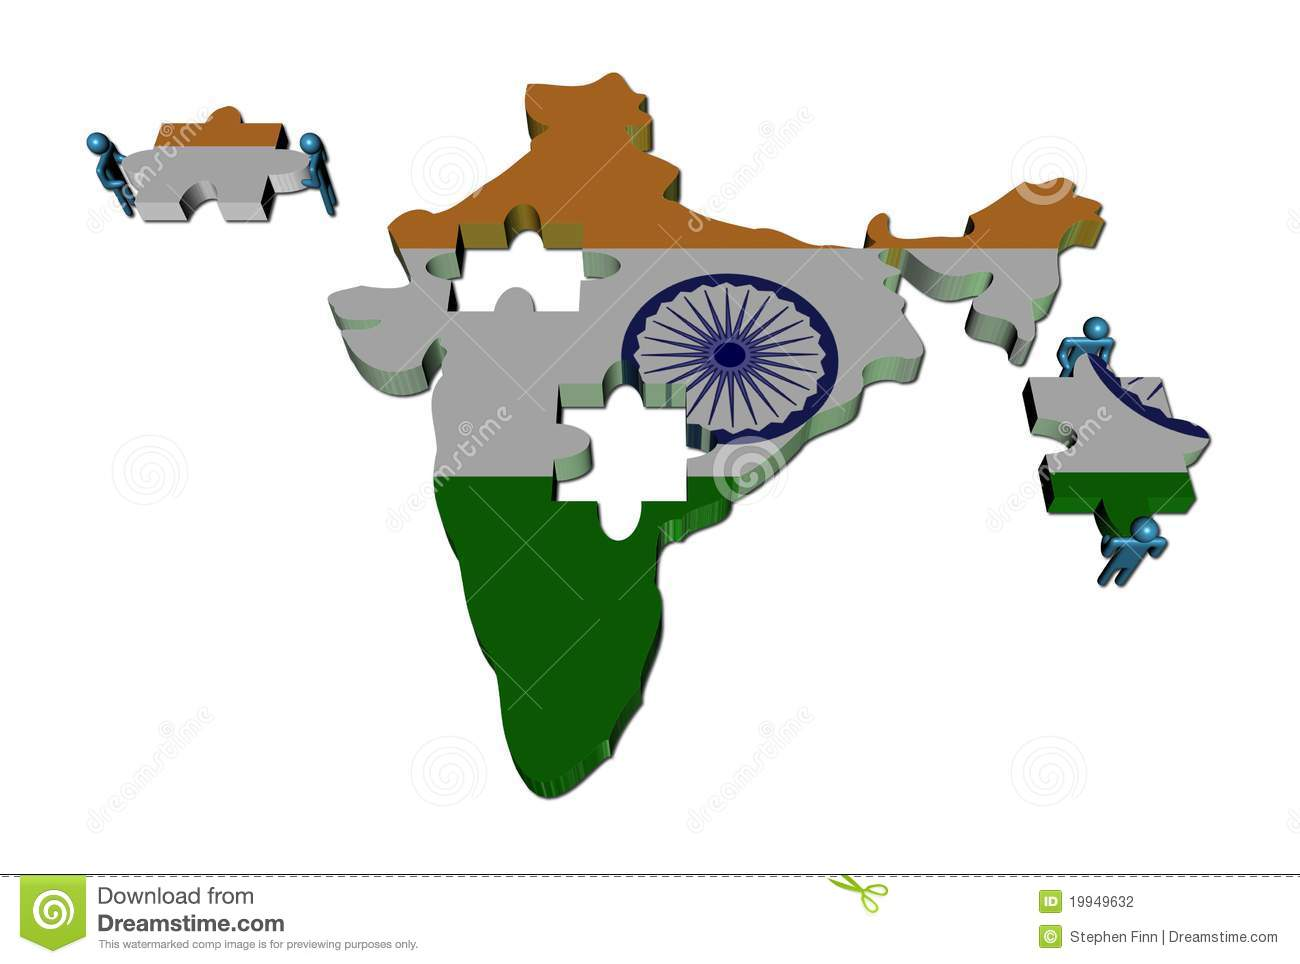 India Map Puzzle.People With Pieces And India Map Flag Stock Illustration